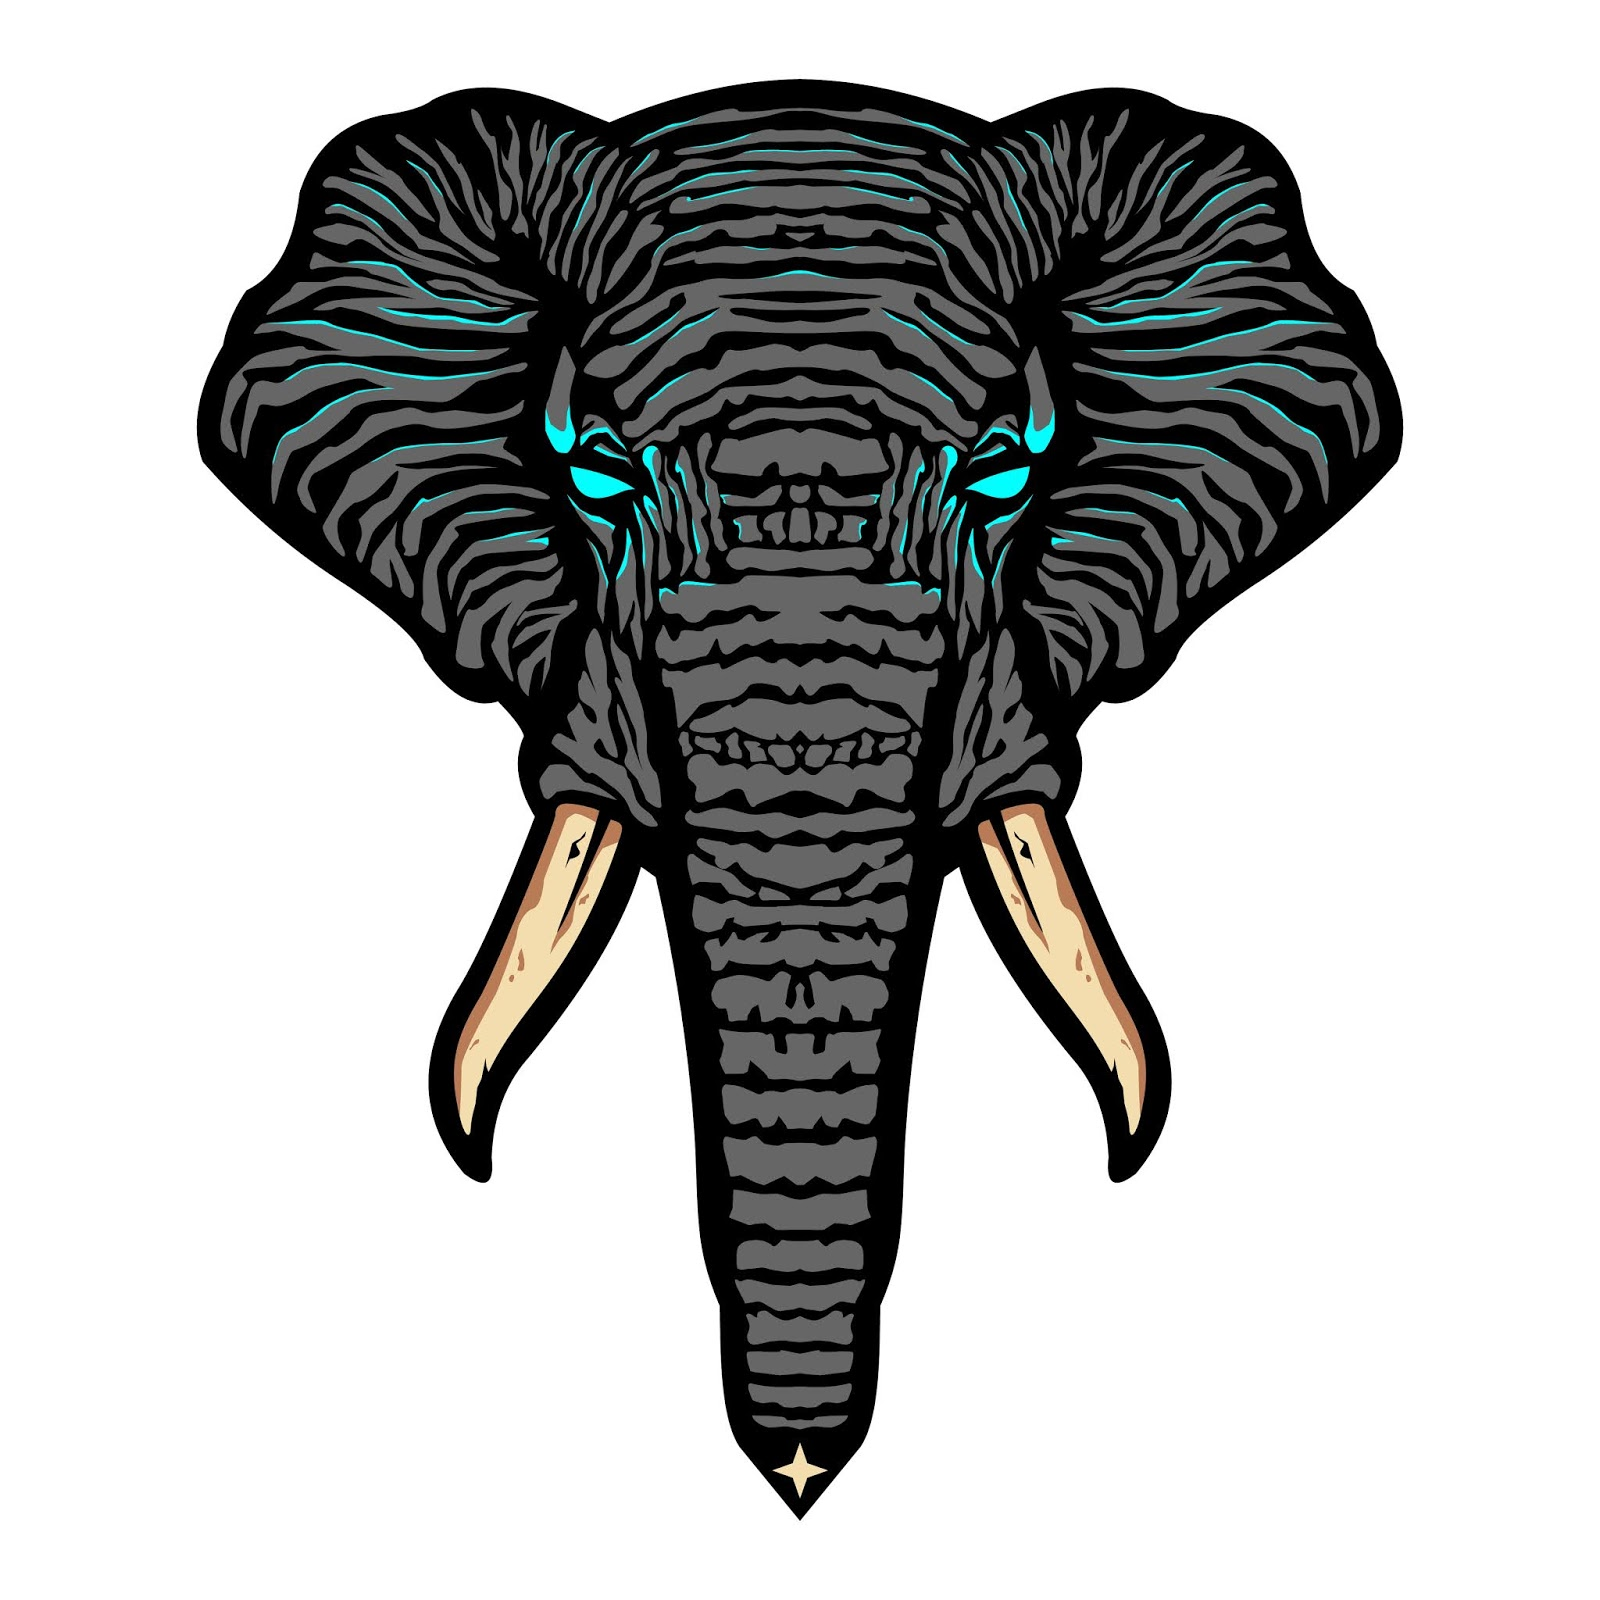 Elephant Head Free Download Vector CDR, AI, EPS and PNG Formats